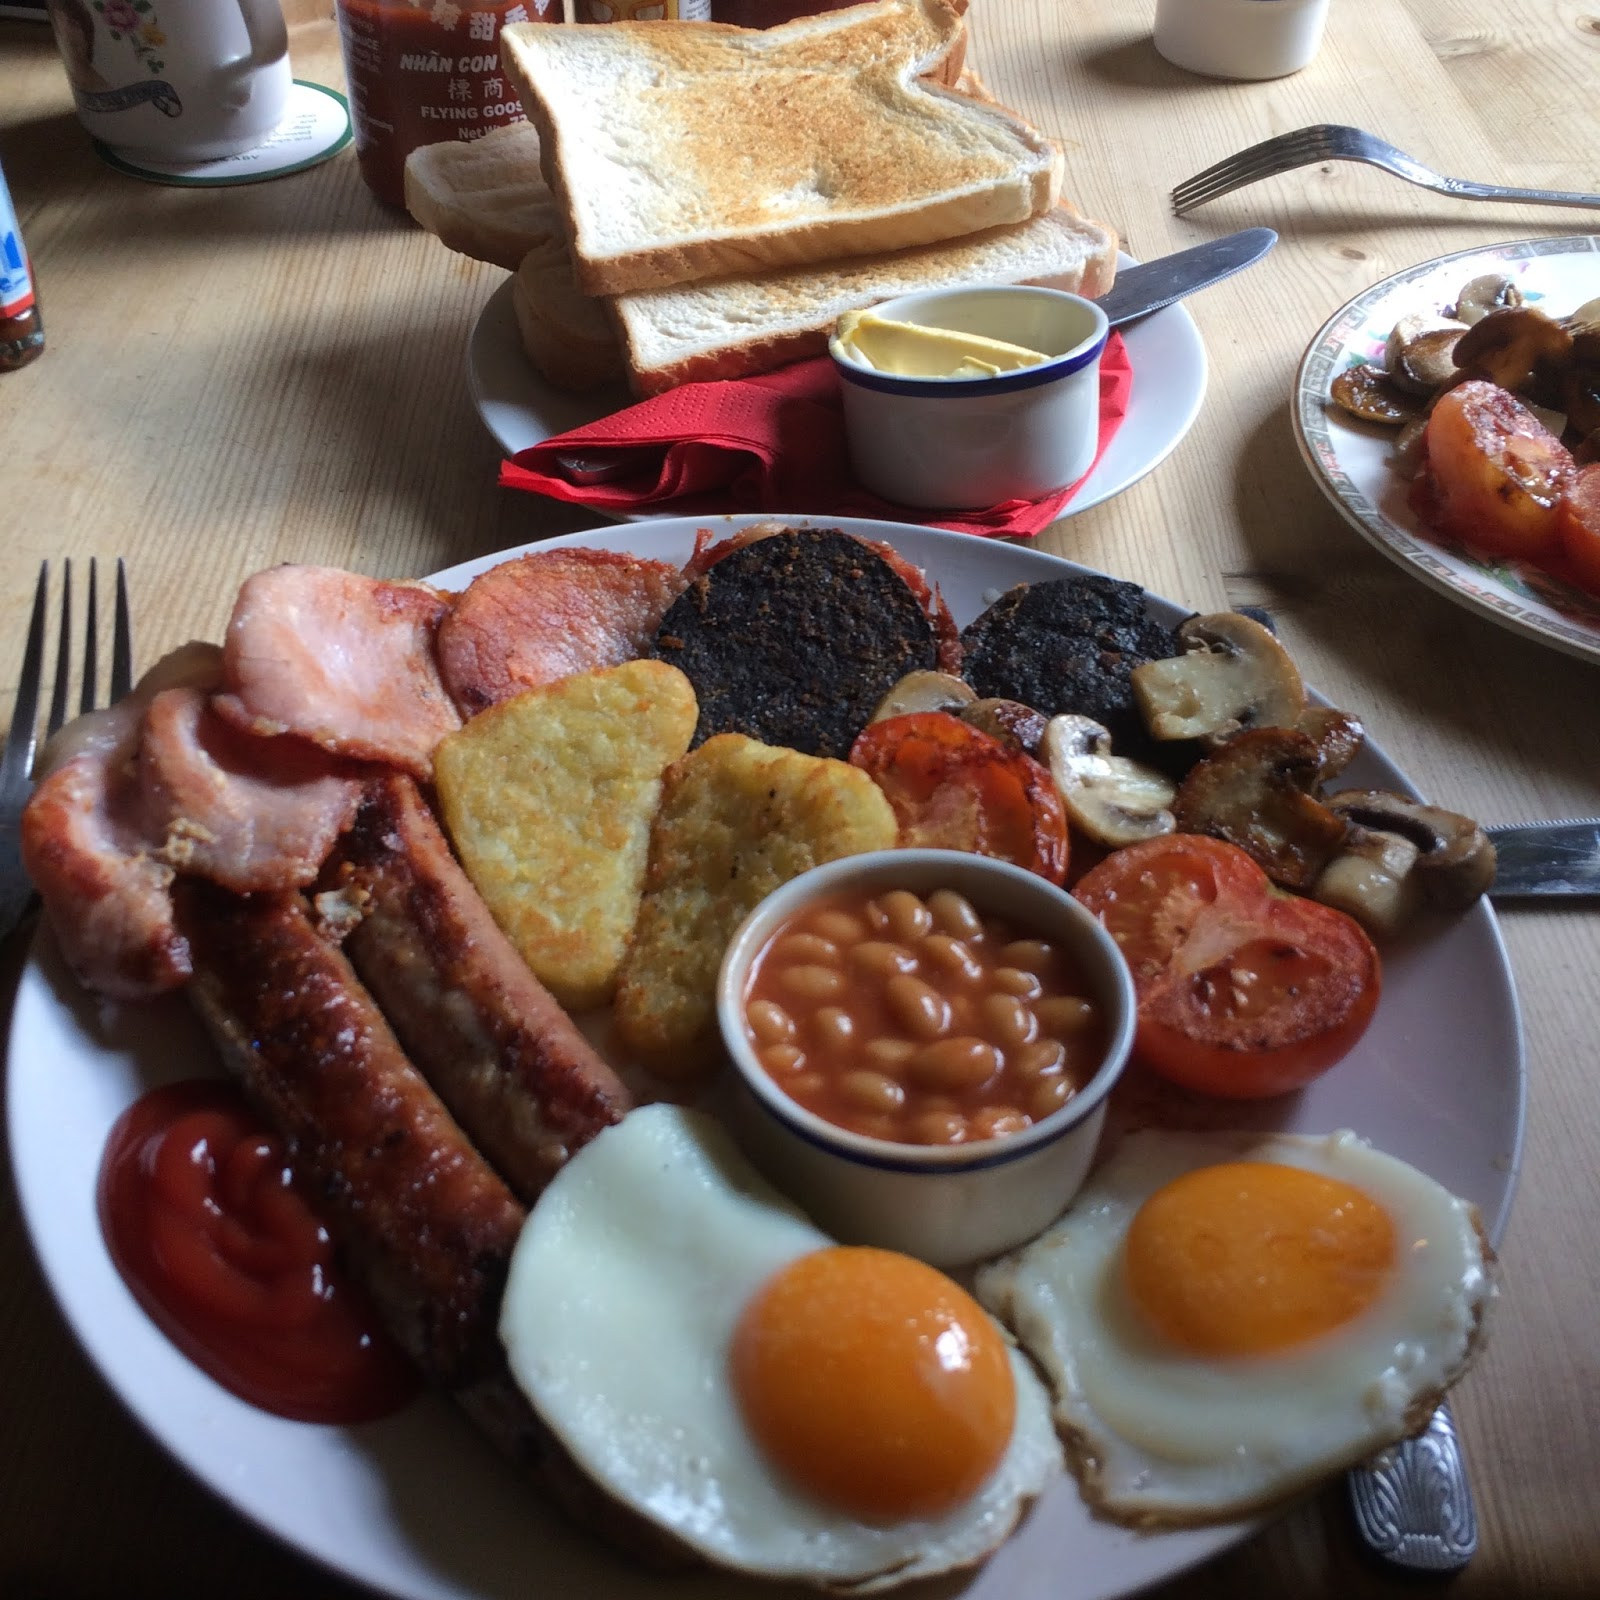 The Fry Up Inspector: All Day Breakfasts In Norwich